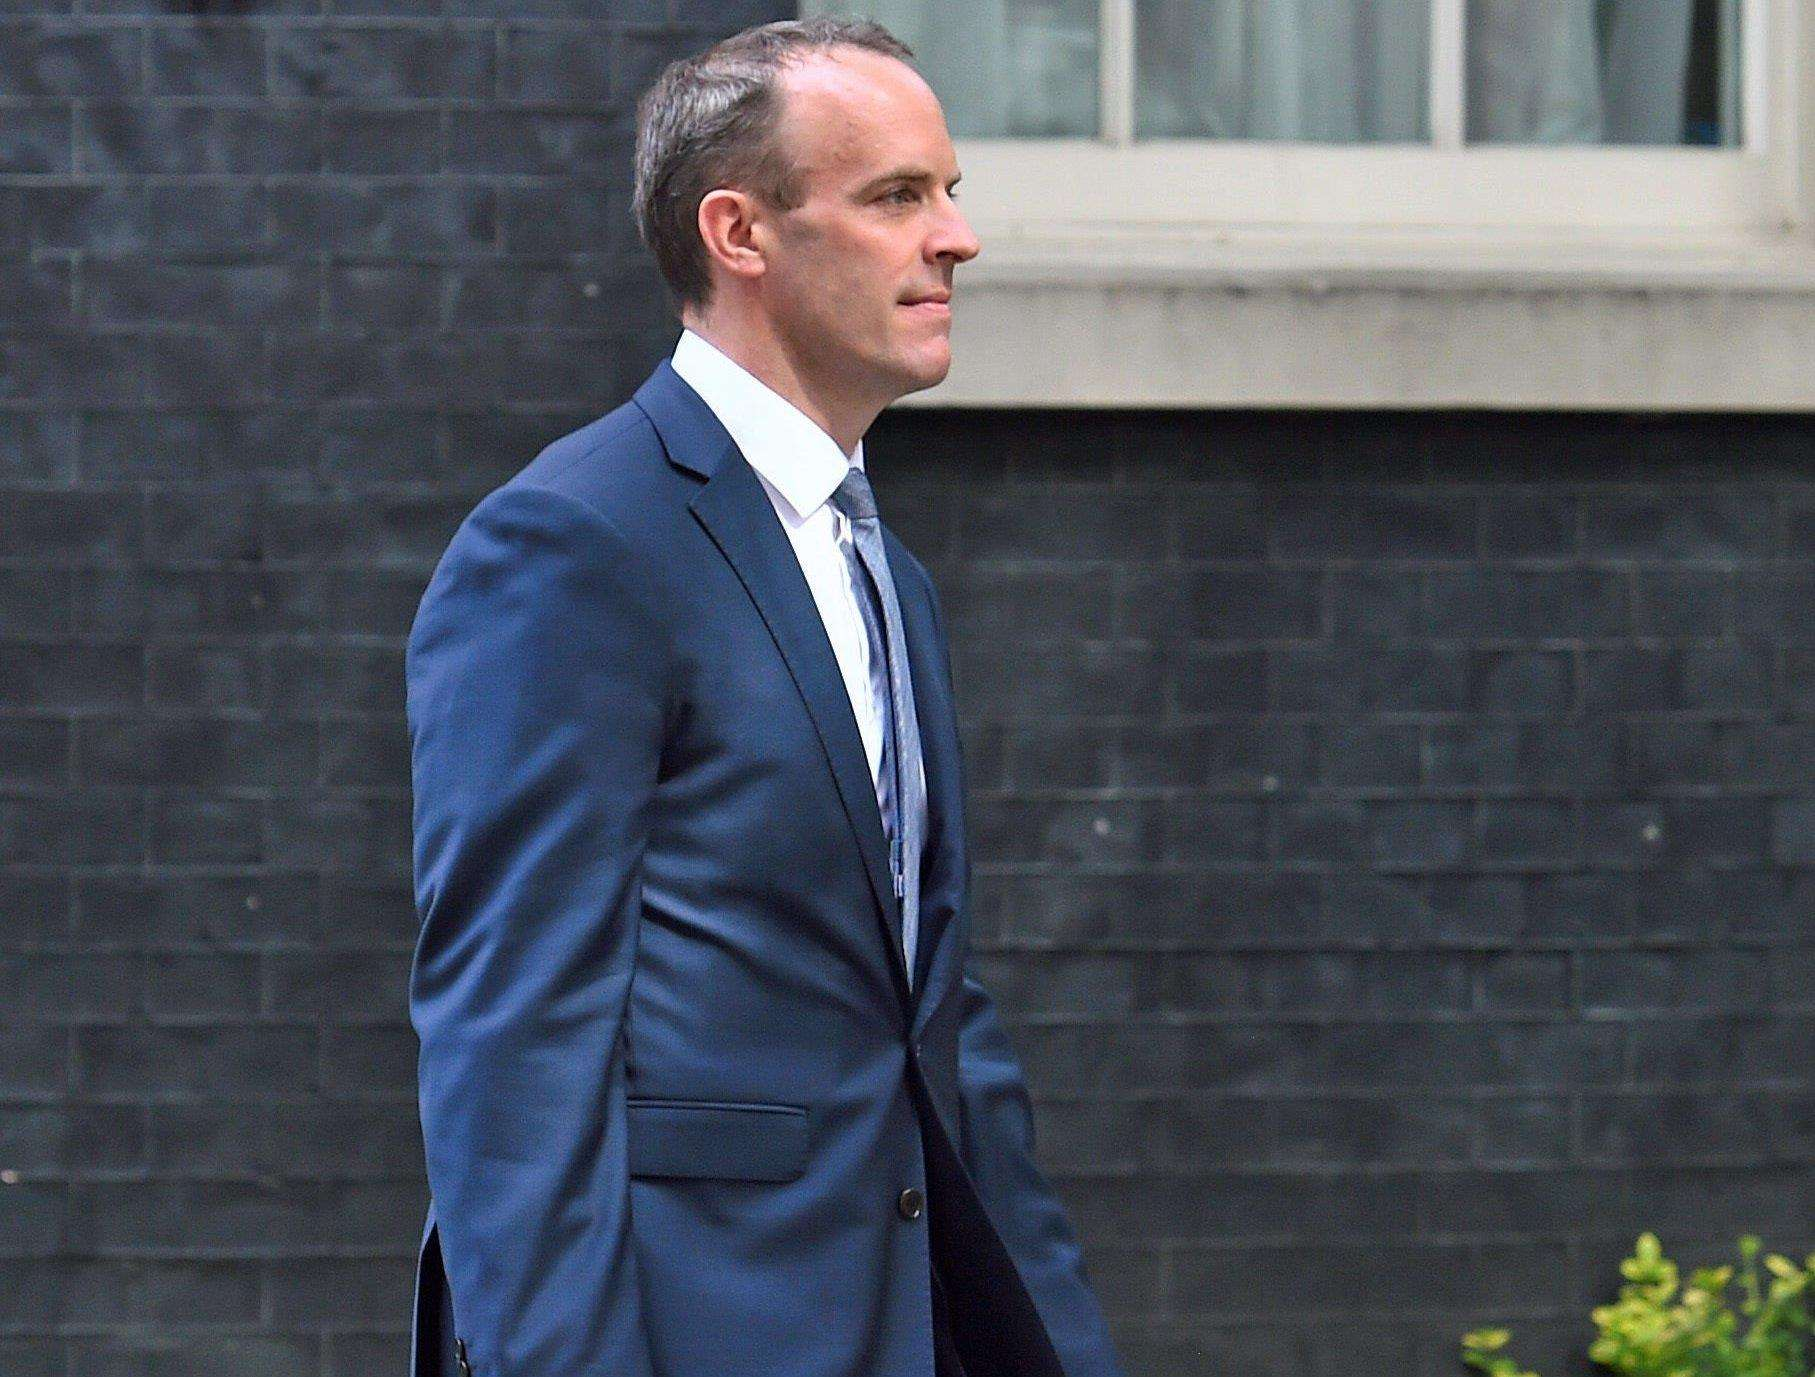 Dominic Raab has resigned as Brexit Secretary